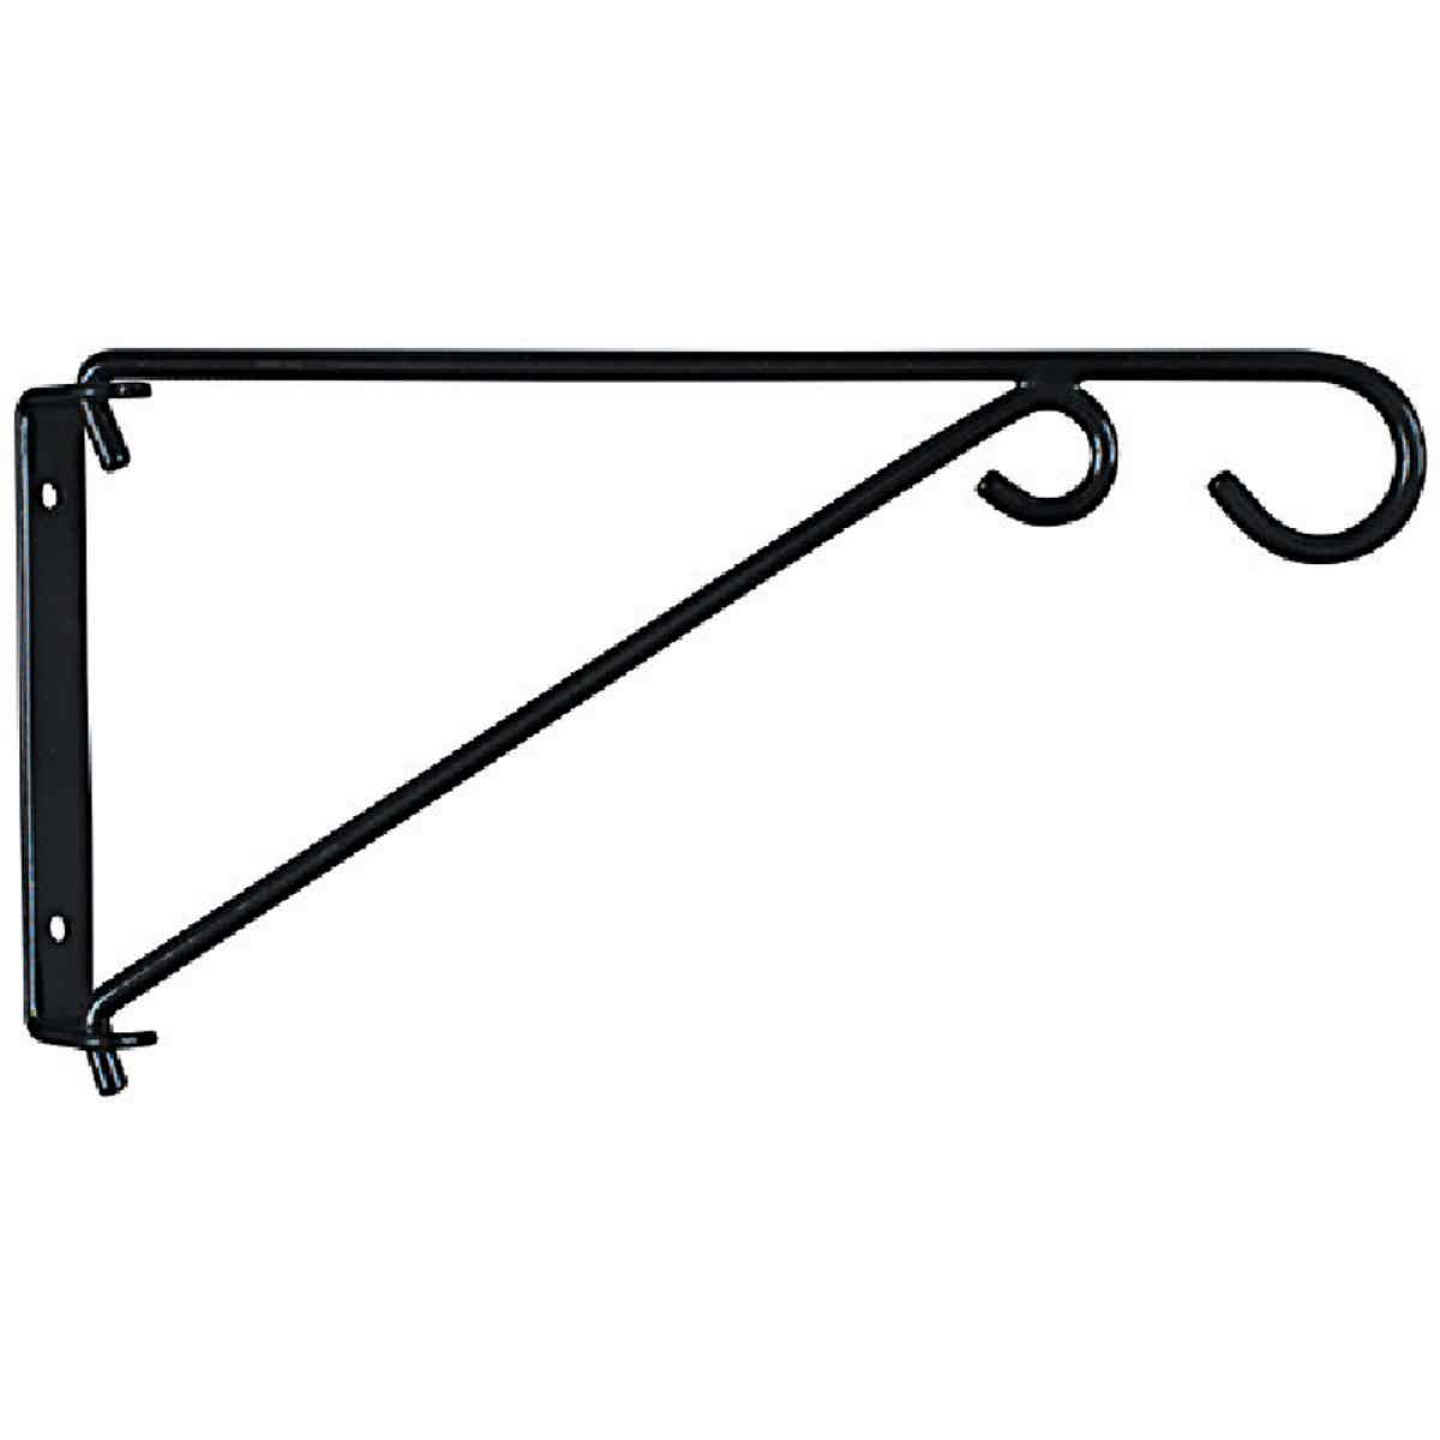 National 9 In. Black Steel Swivel Hanging Plant Bracket Image 3